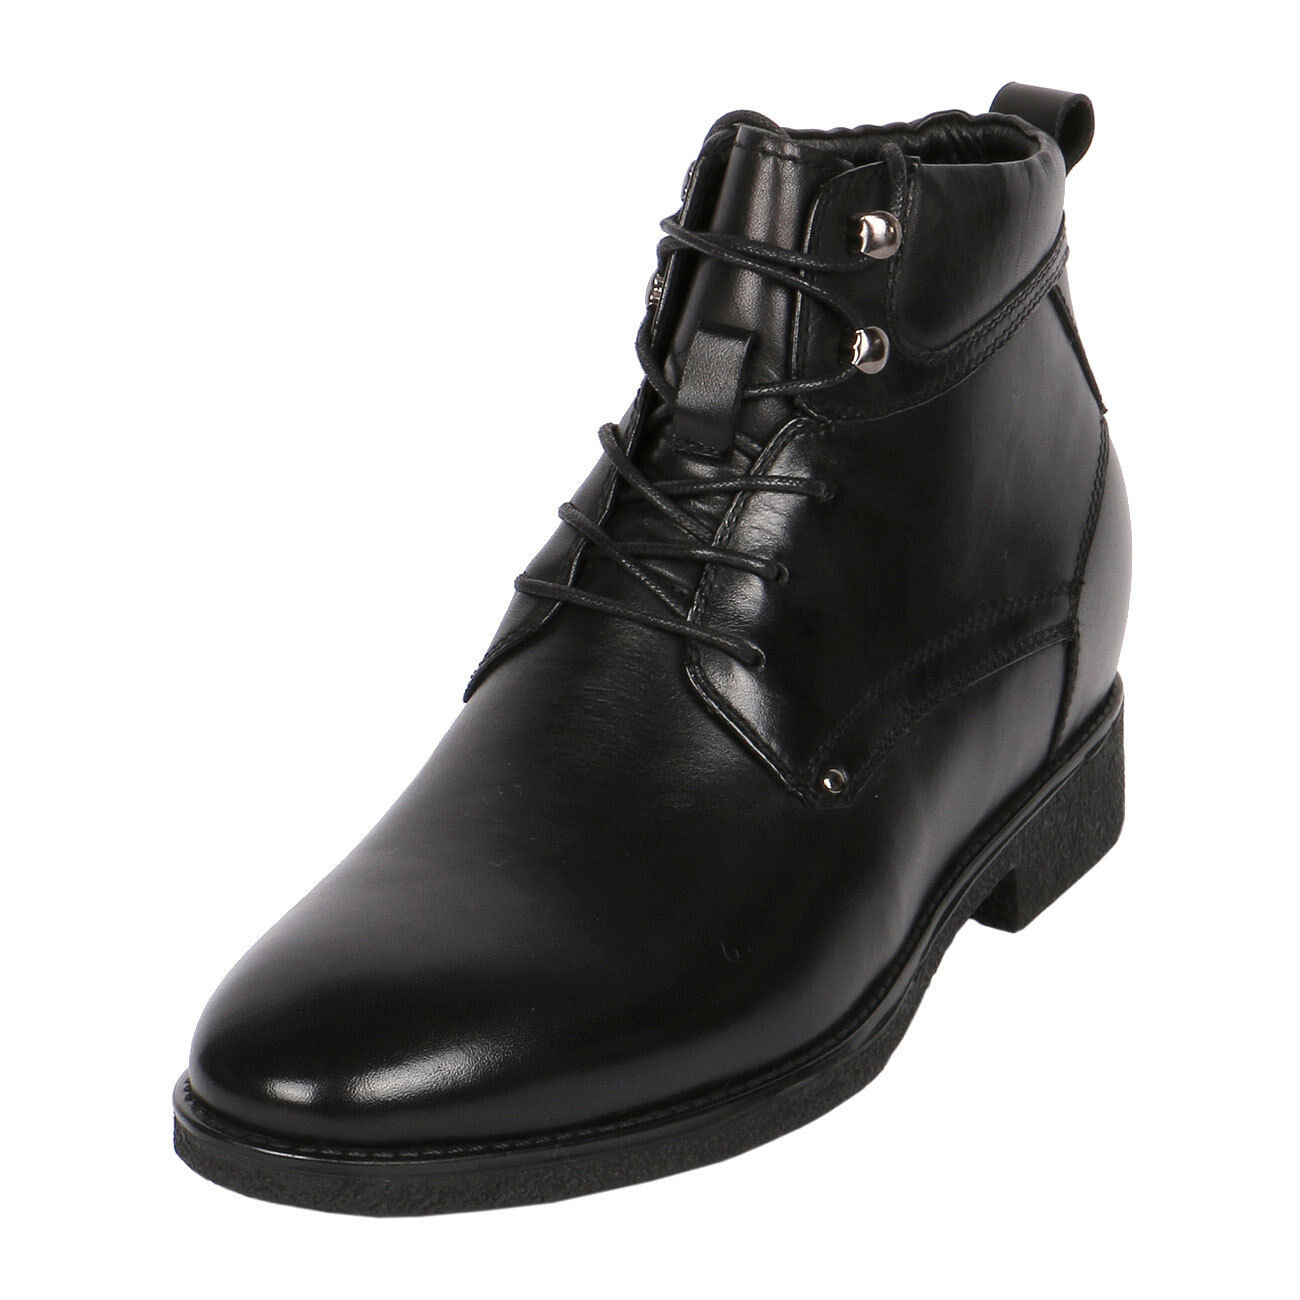 Mens Hight Increasing Stiefel by 3 inch to Make You Taller-CYB35